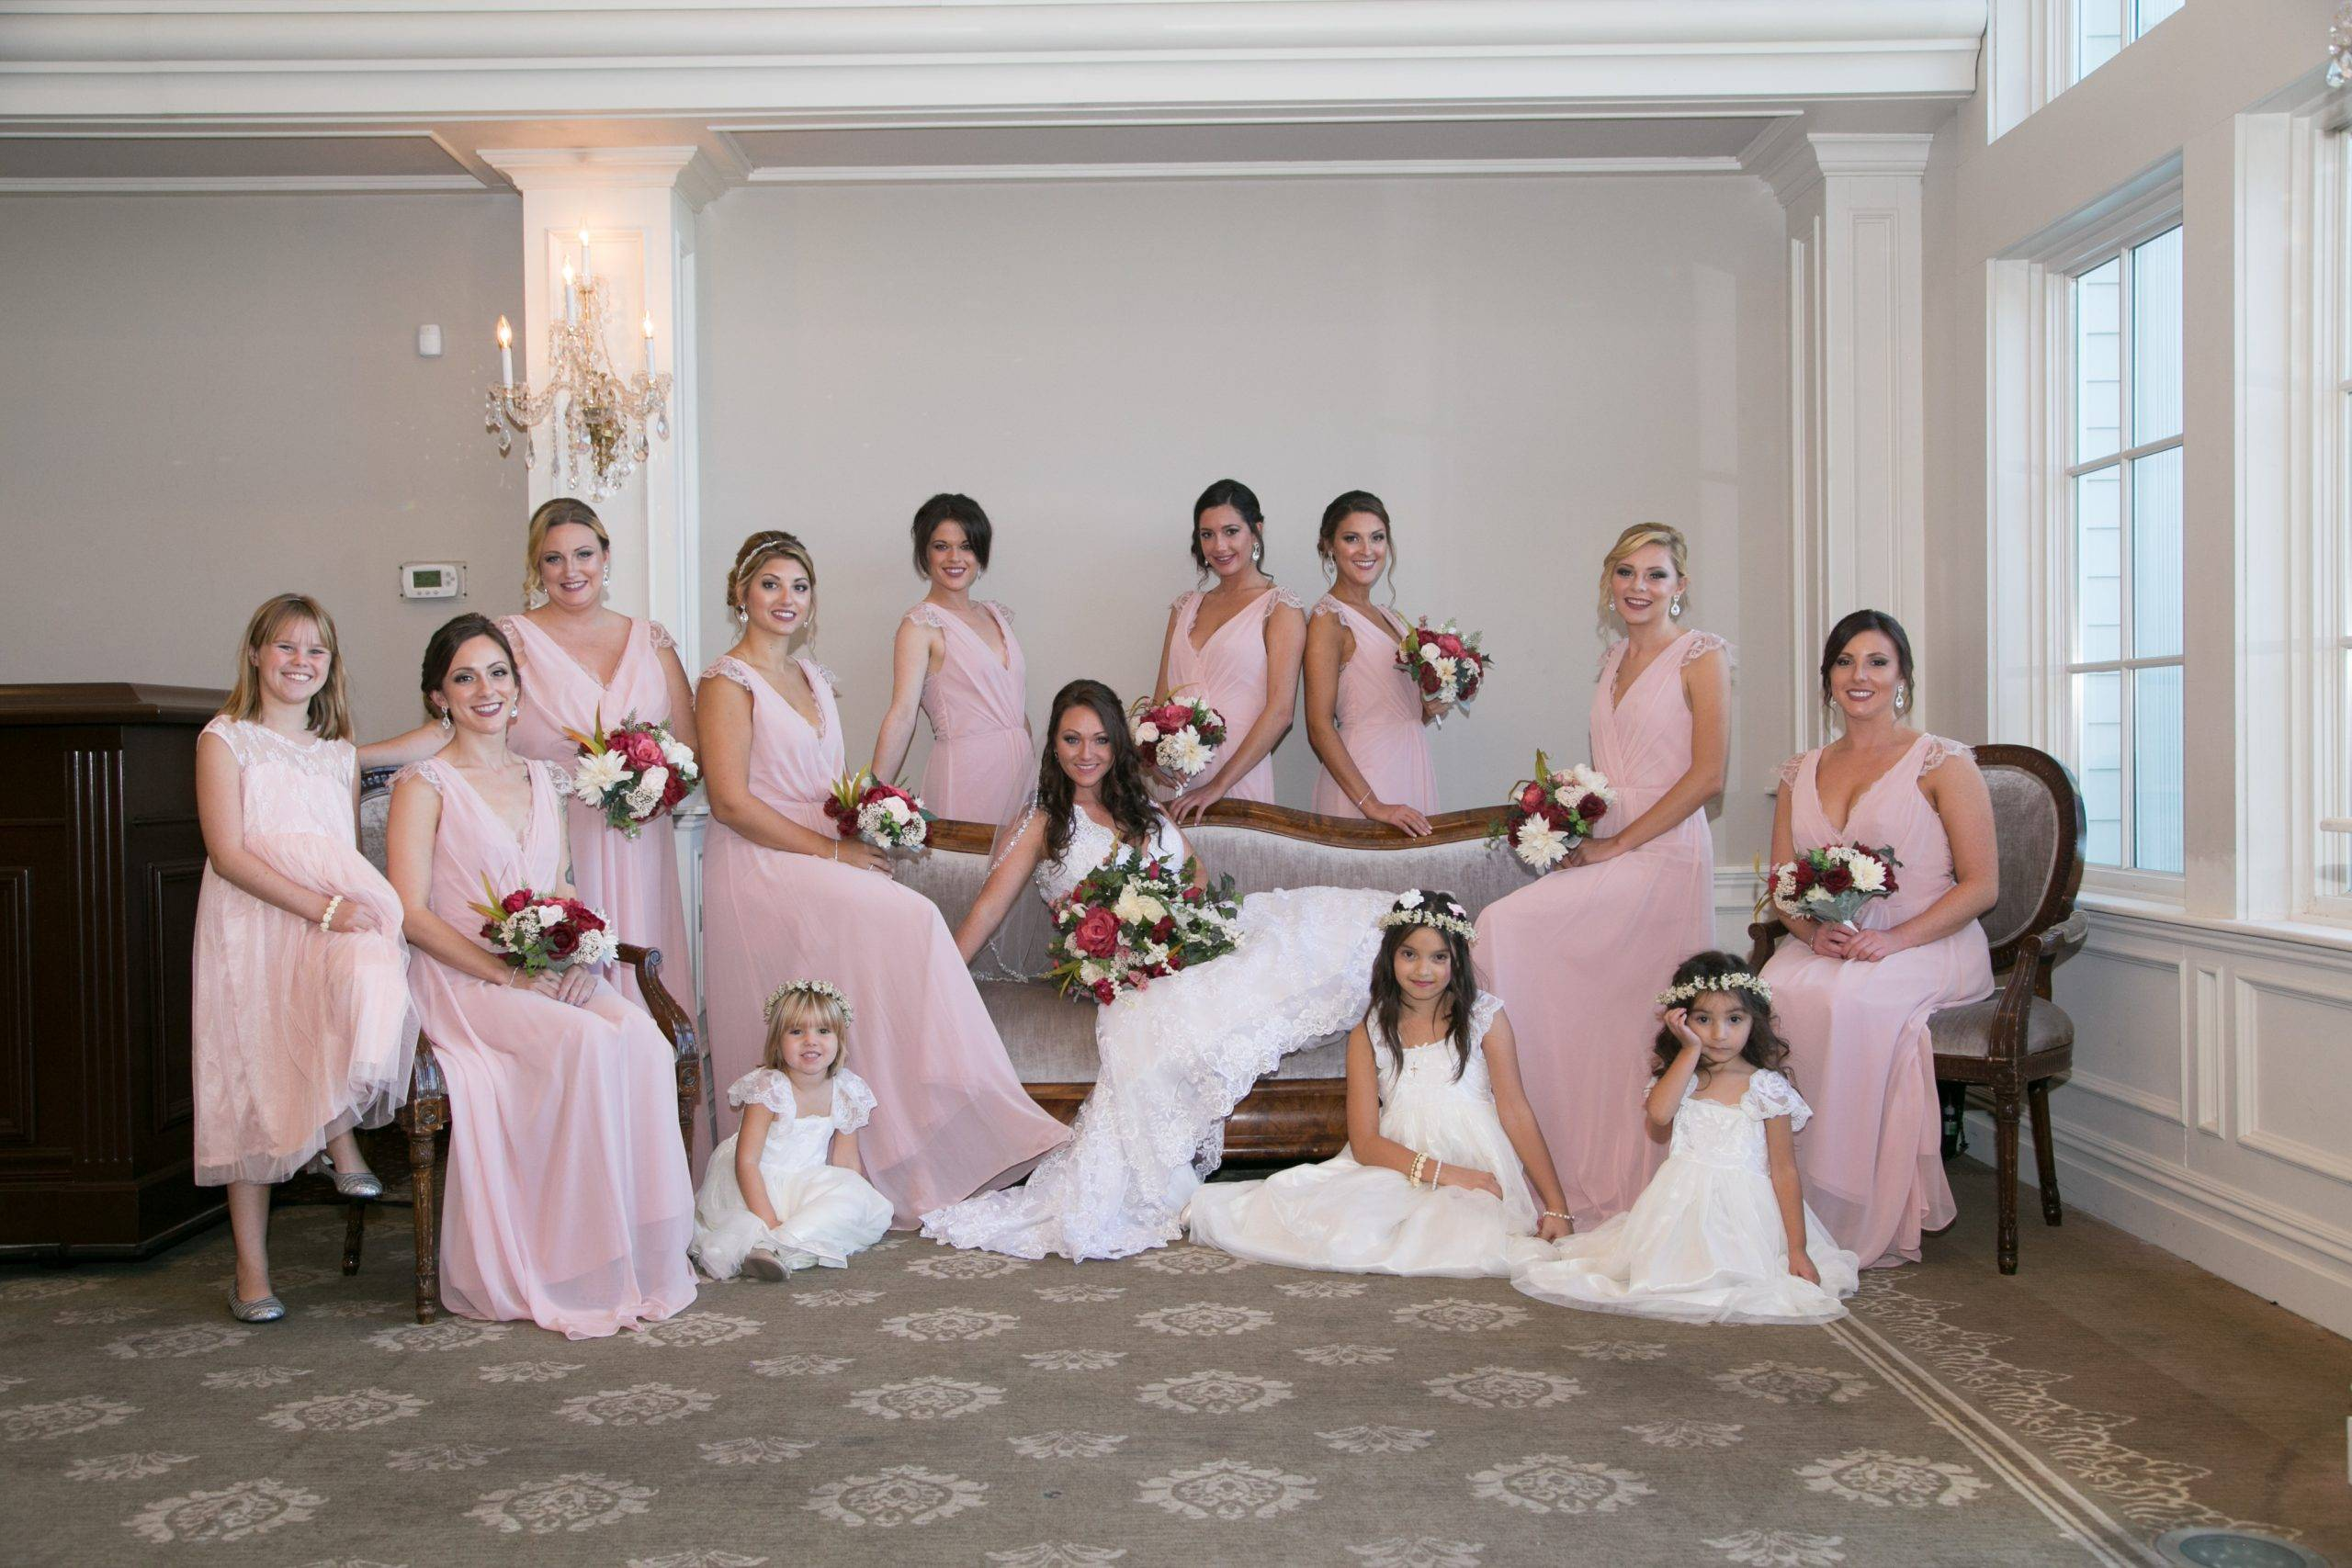 Park Savoy bride, bridesmaids, and flower girls ready for the wedding